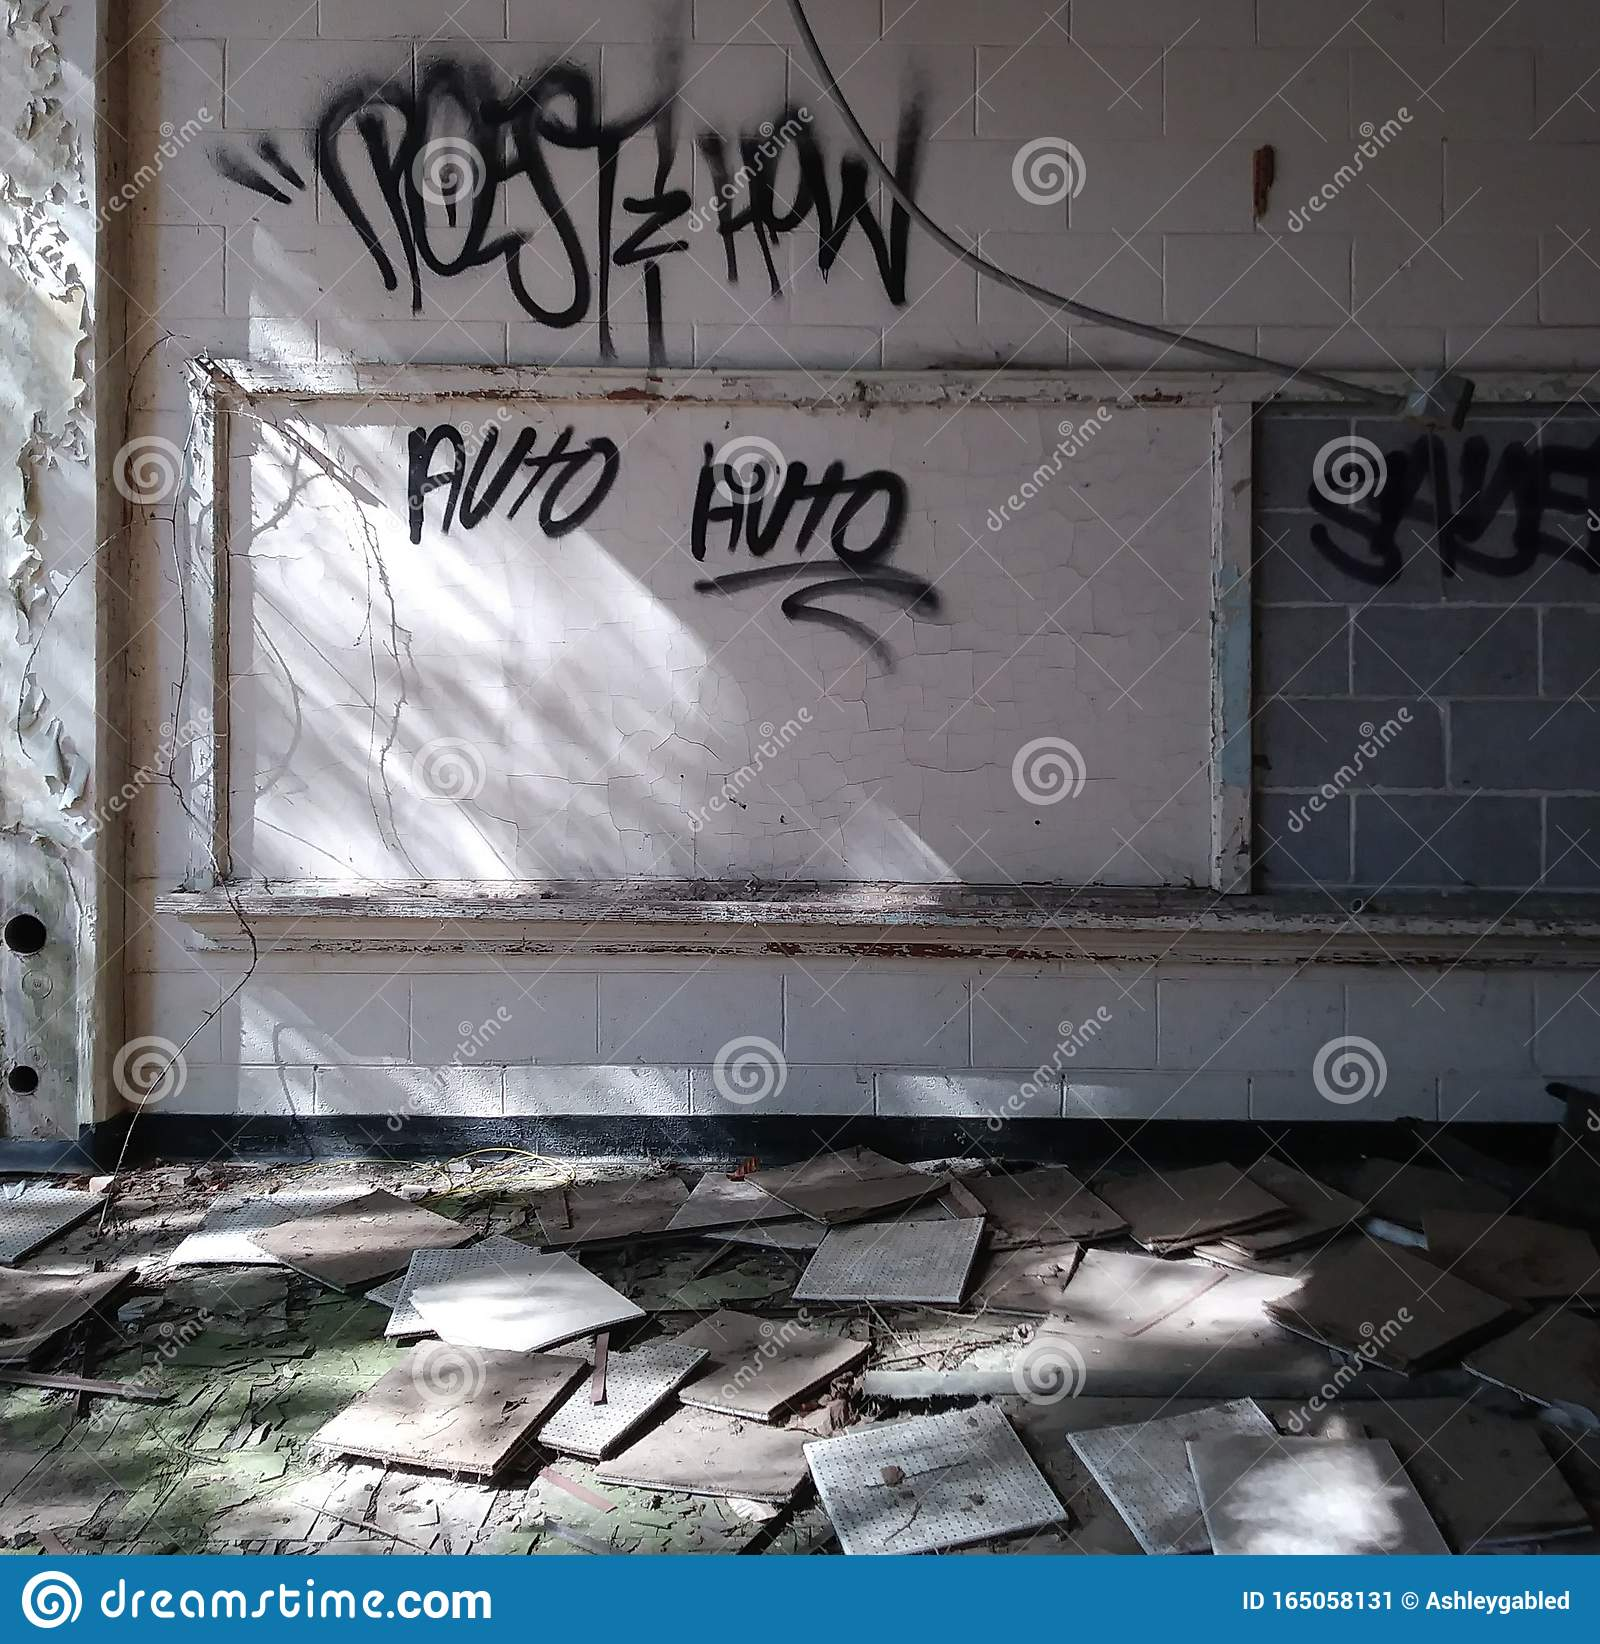 Abandoned School Classroom And Graffiti. Stock Image